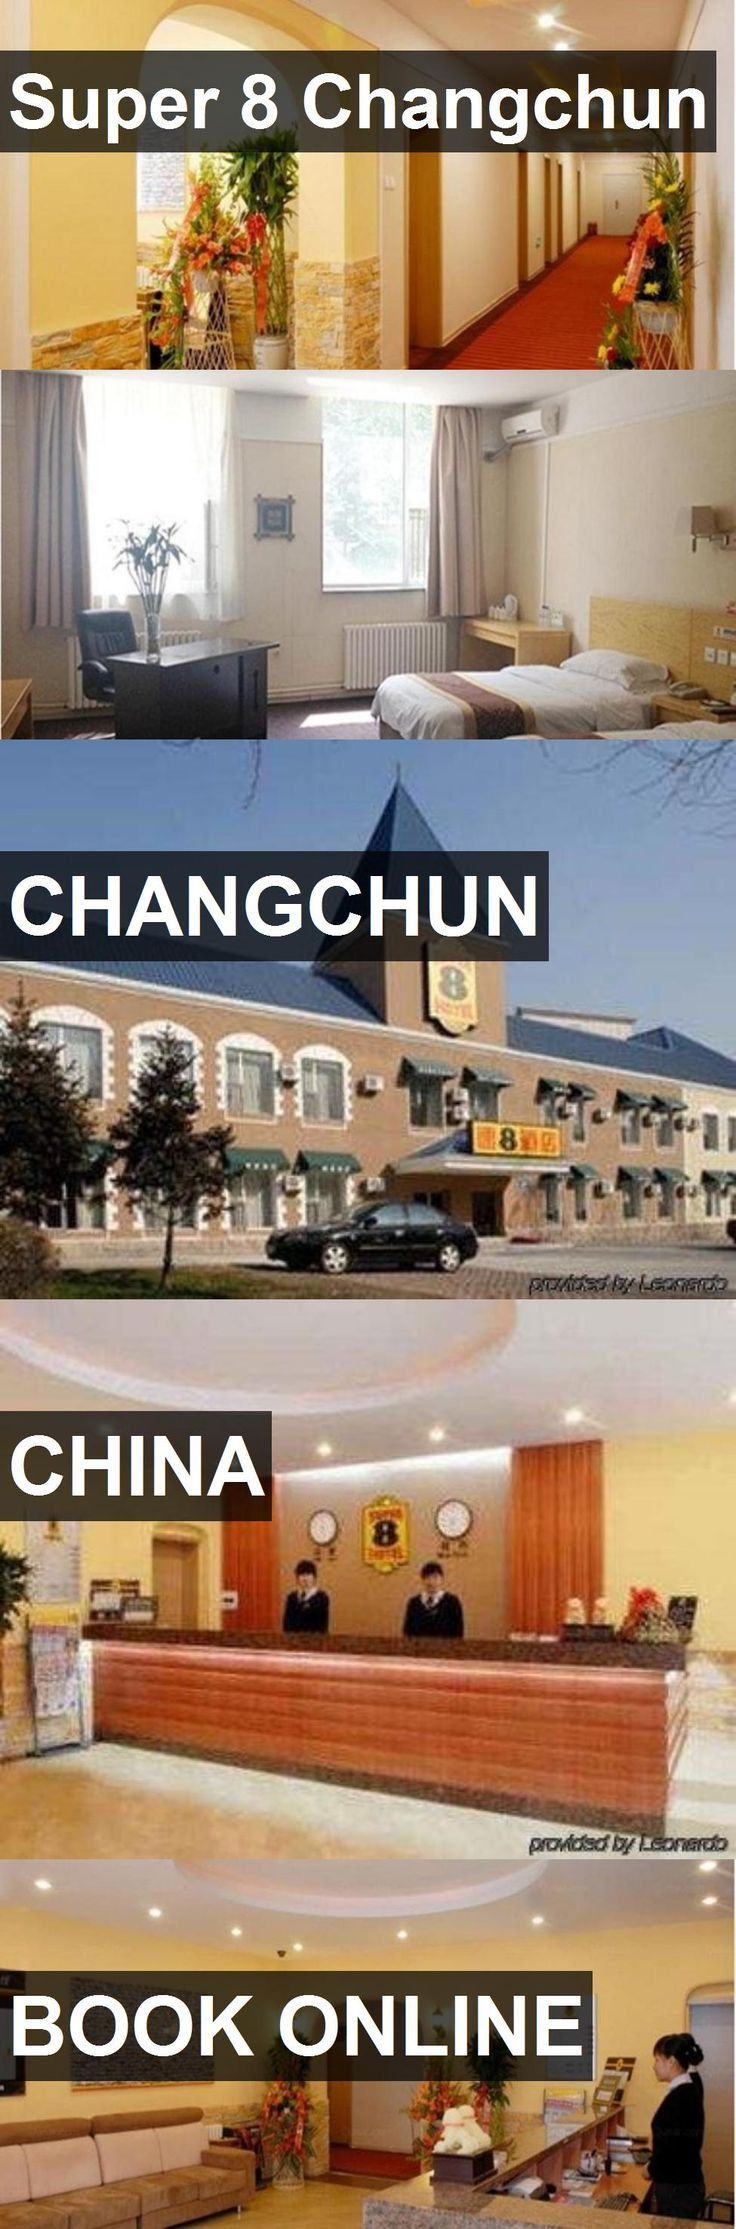 Hotel Super 8 Changchun in Changchun, China. For more information, photos, reviews and best prices please follow the link. #China #Changchun #travel #vacation #hotel